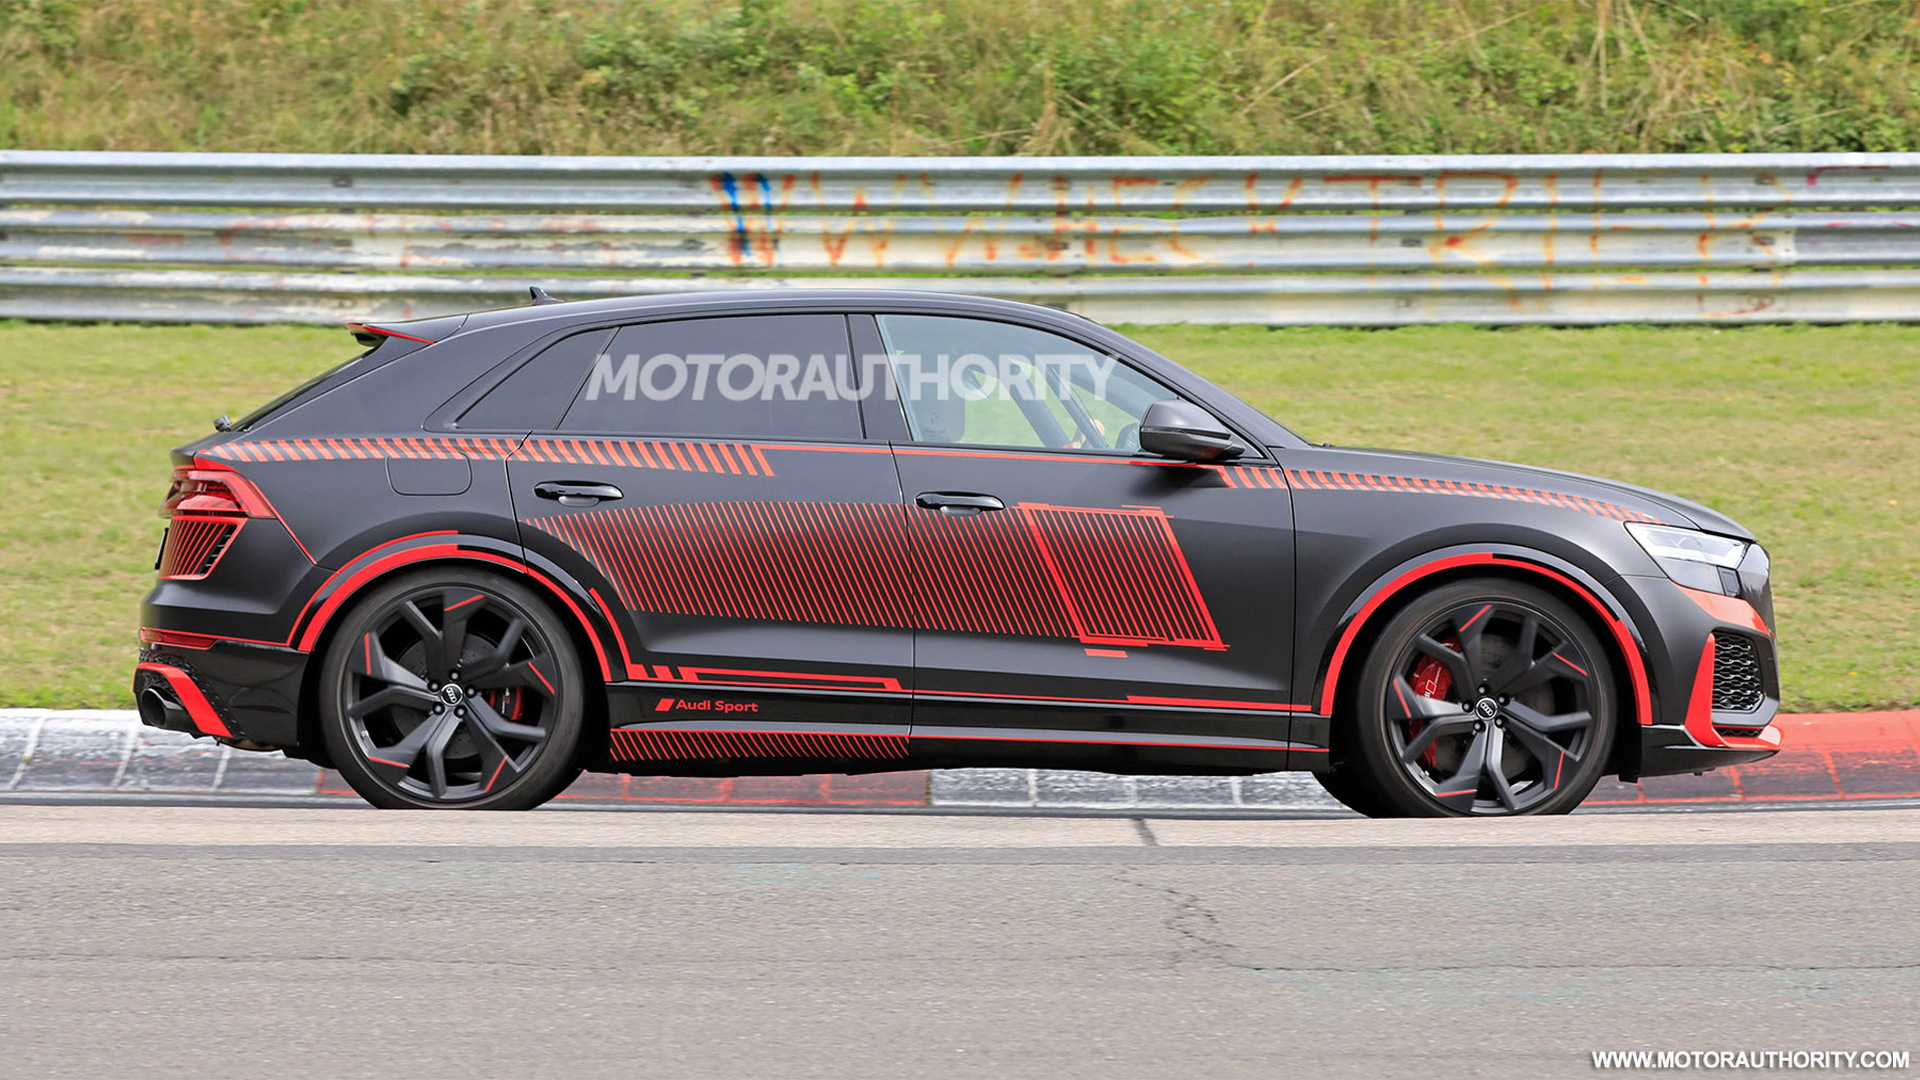 2020 Audi RS Q8 spy shots - Photo credit: S. Baldauf/SB-Medien